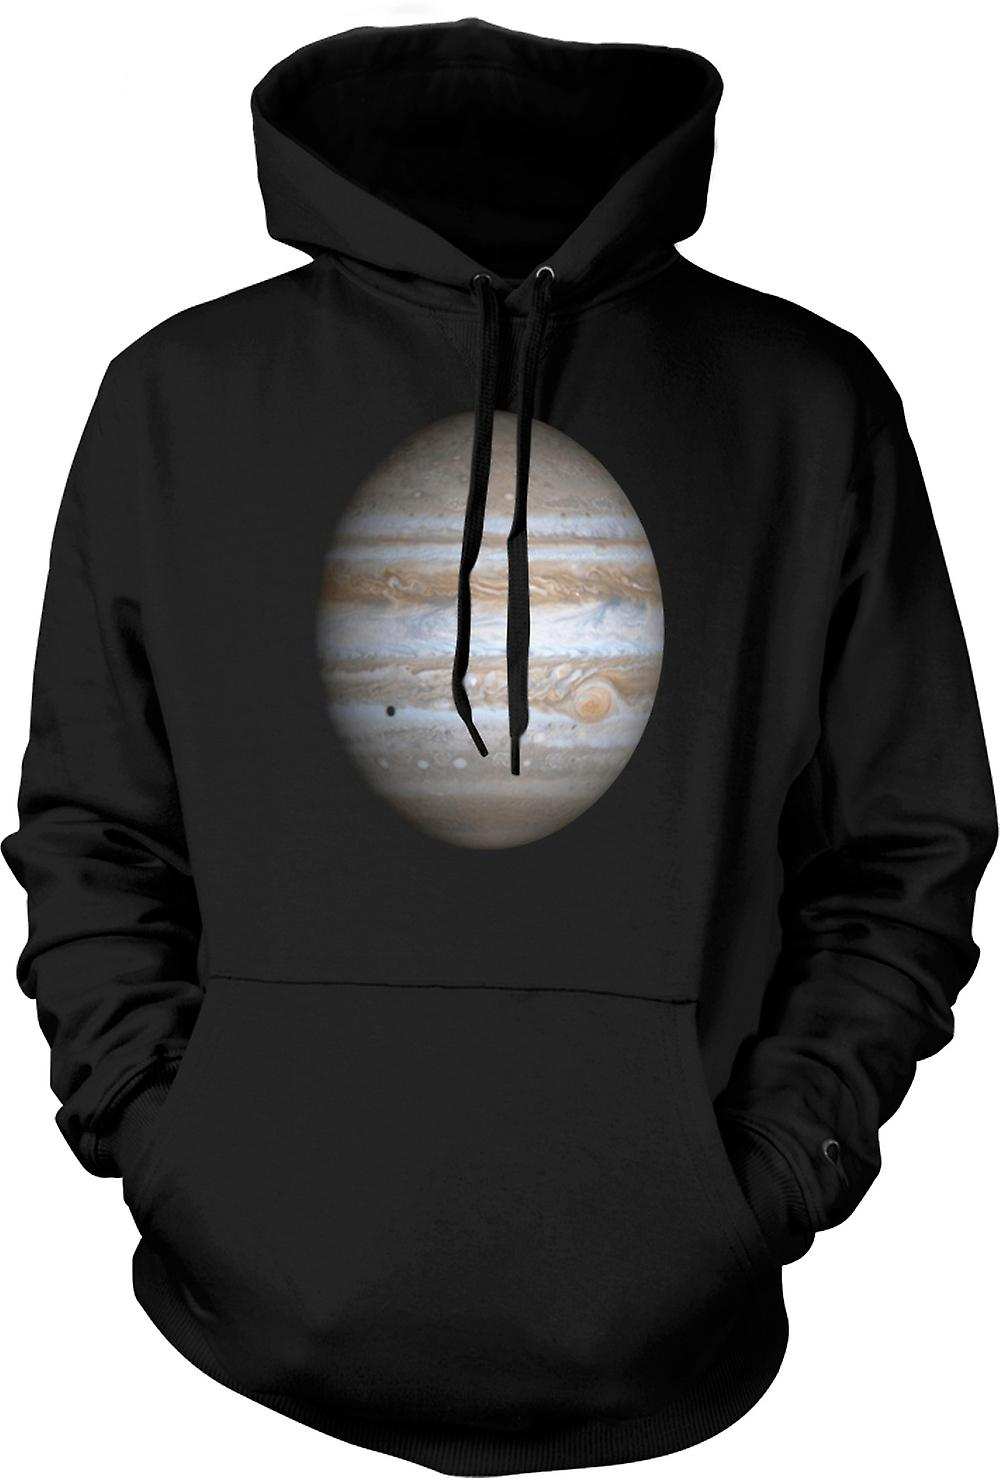 Mens Hoodie - Jupiter - Cool astronomia